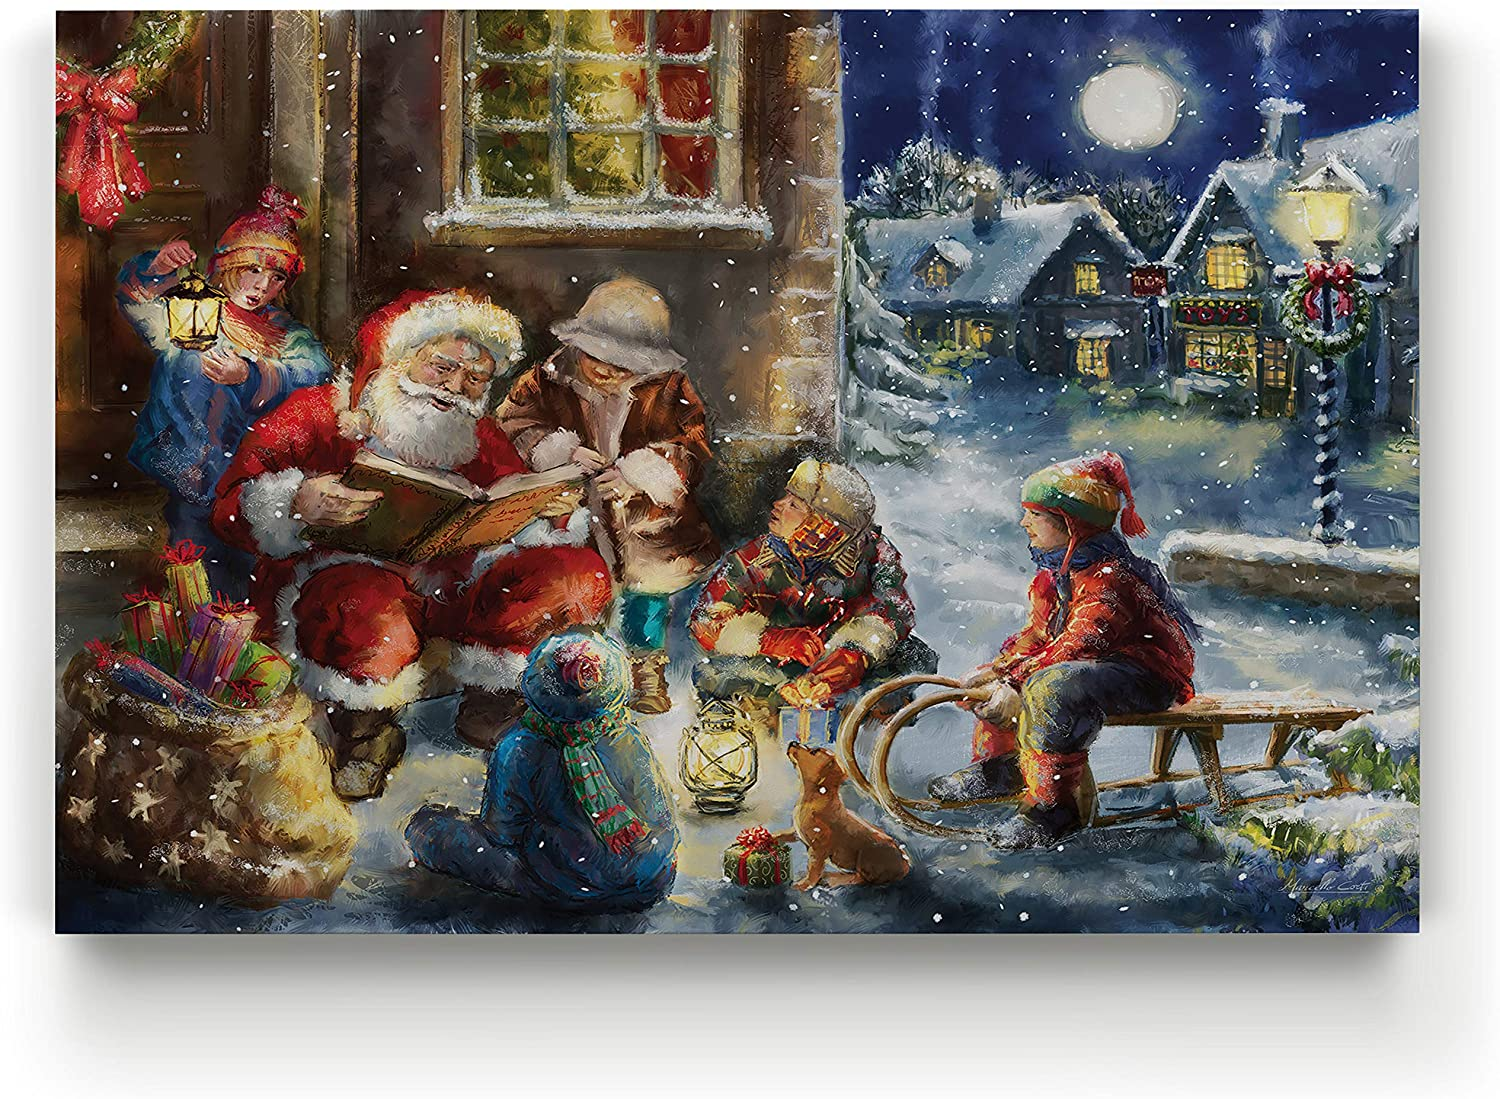 Renditions Gallery Gallery Wrapped Canvas Christmas Wall Art Print for Holiday Decor, 24x32, The Story of Santa